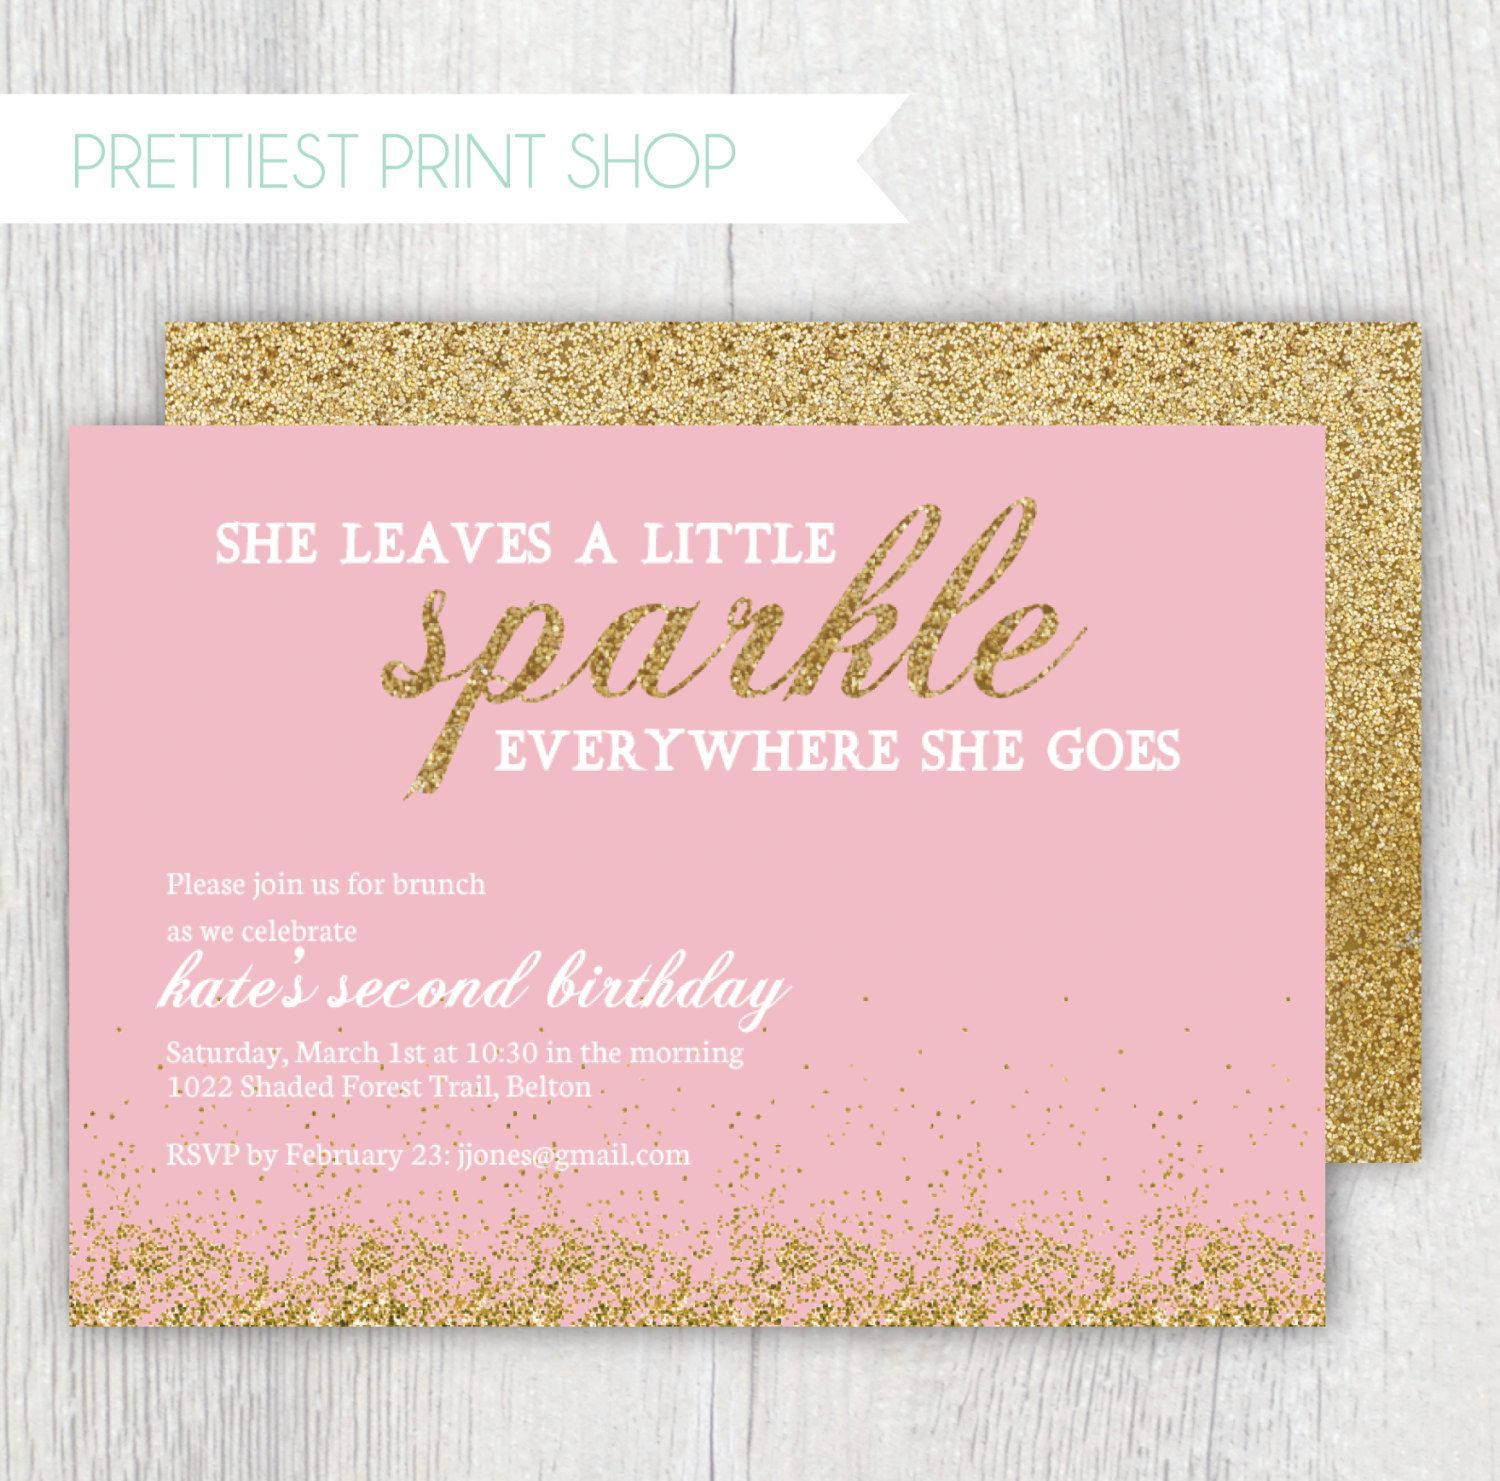 Brookys 2nd Birthday Party Theme And Invitation Printable Gold Glitter Pink By PrettiestPrintShop 1800